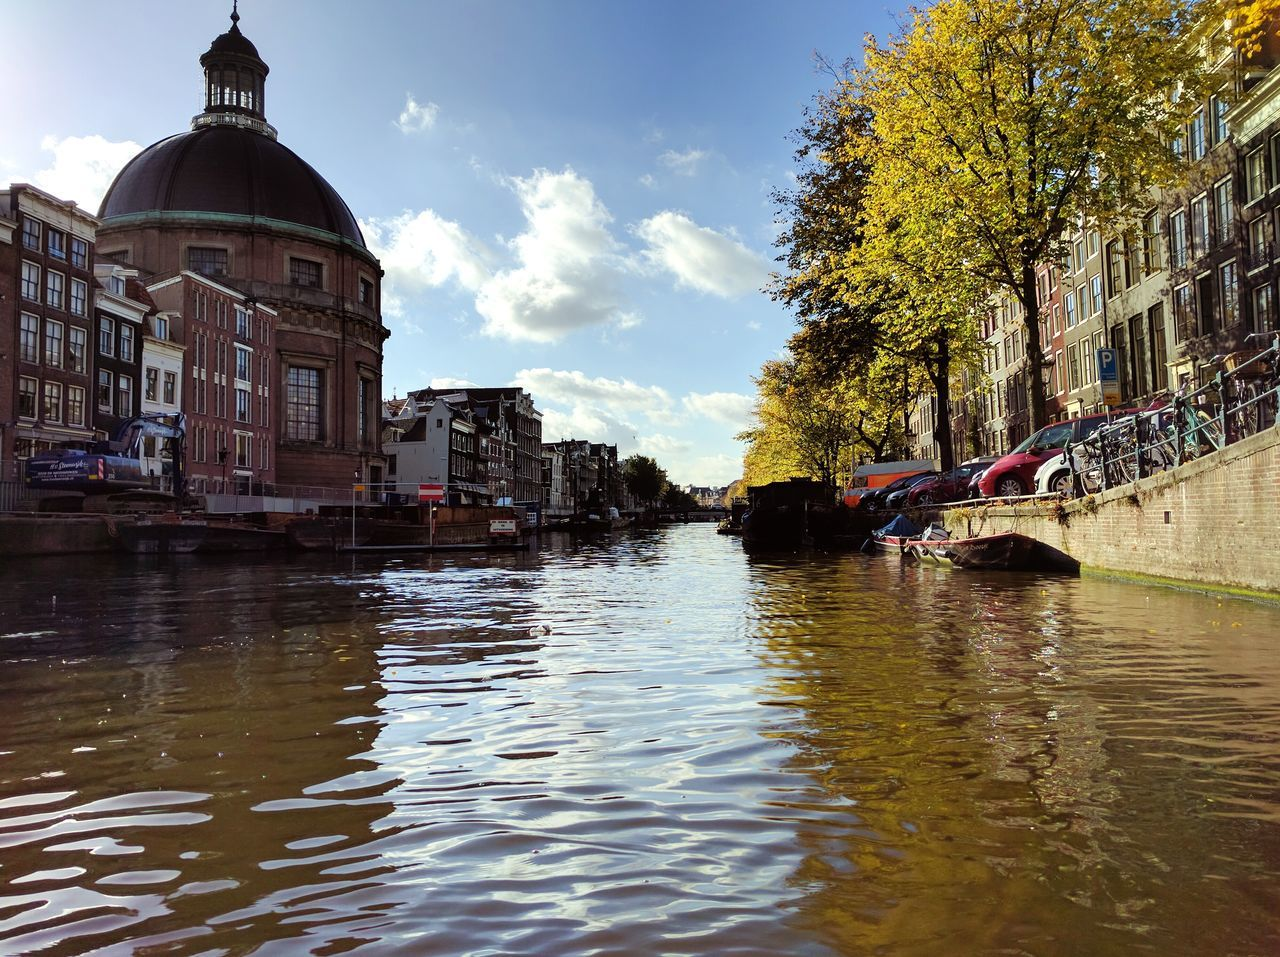 Amsterdam Amsterdam Canal Amsterdam.nl Cruise Cityscape River Boat Architecture Reflection Built Structure Building Exterior City Travel Destinations Sky Water Cloud - Sky Outdoors No People Day